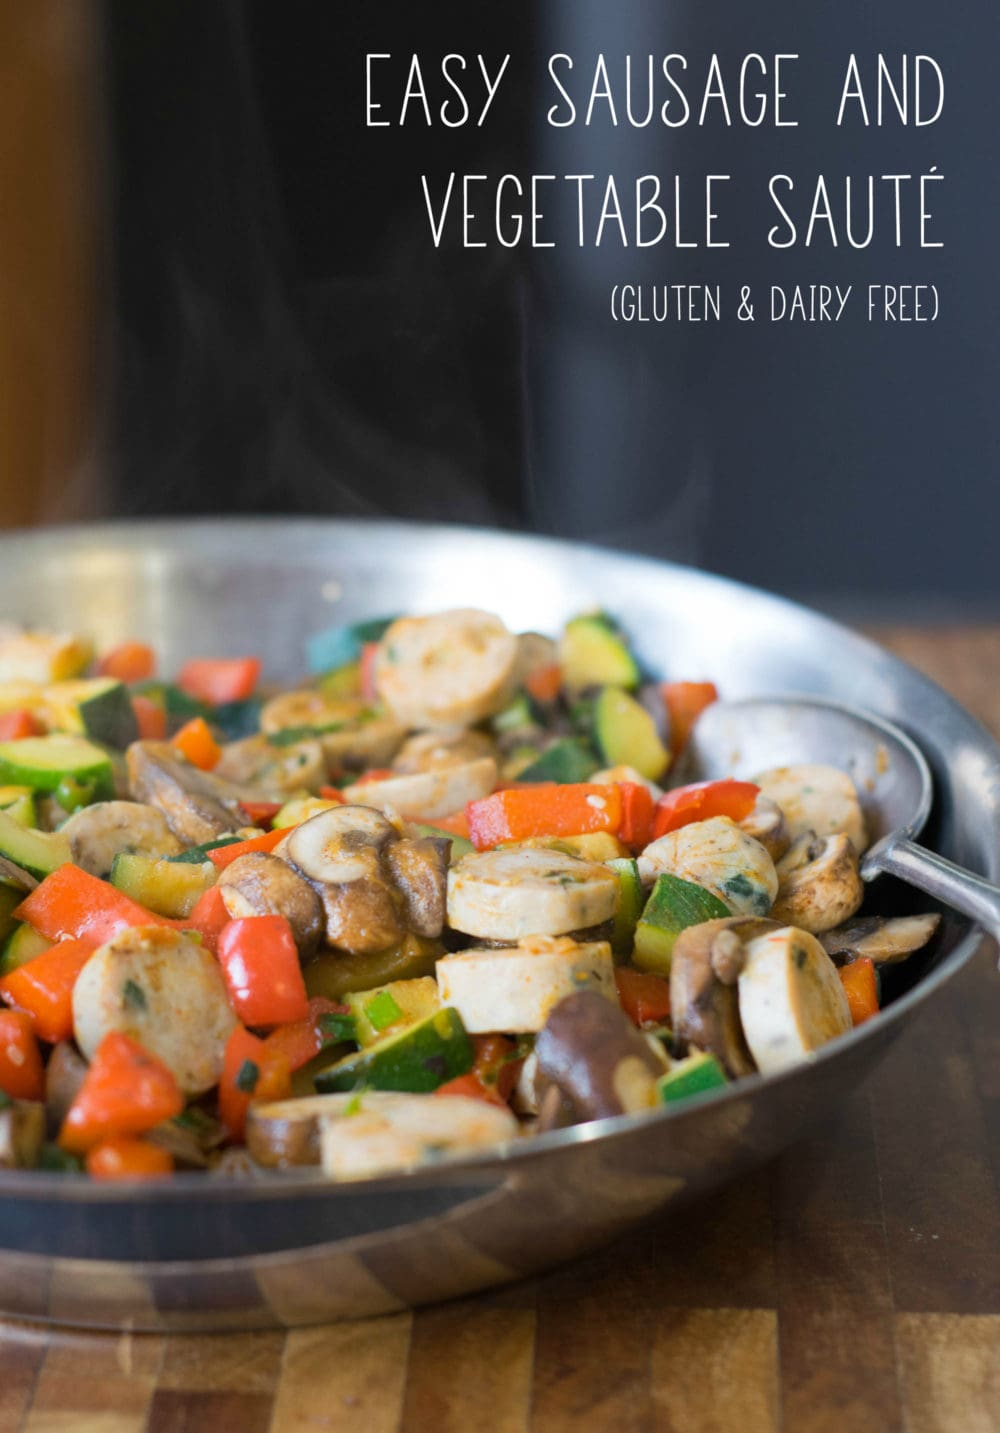 Make this one-pot dinner in under 30-minutes: Easy Sausage and Vegetable Sauté. It's healthy, grain-free, gluten-free, and dairy-free! - @TheFitCookie